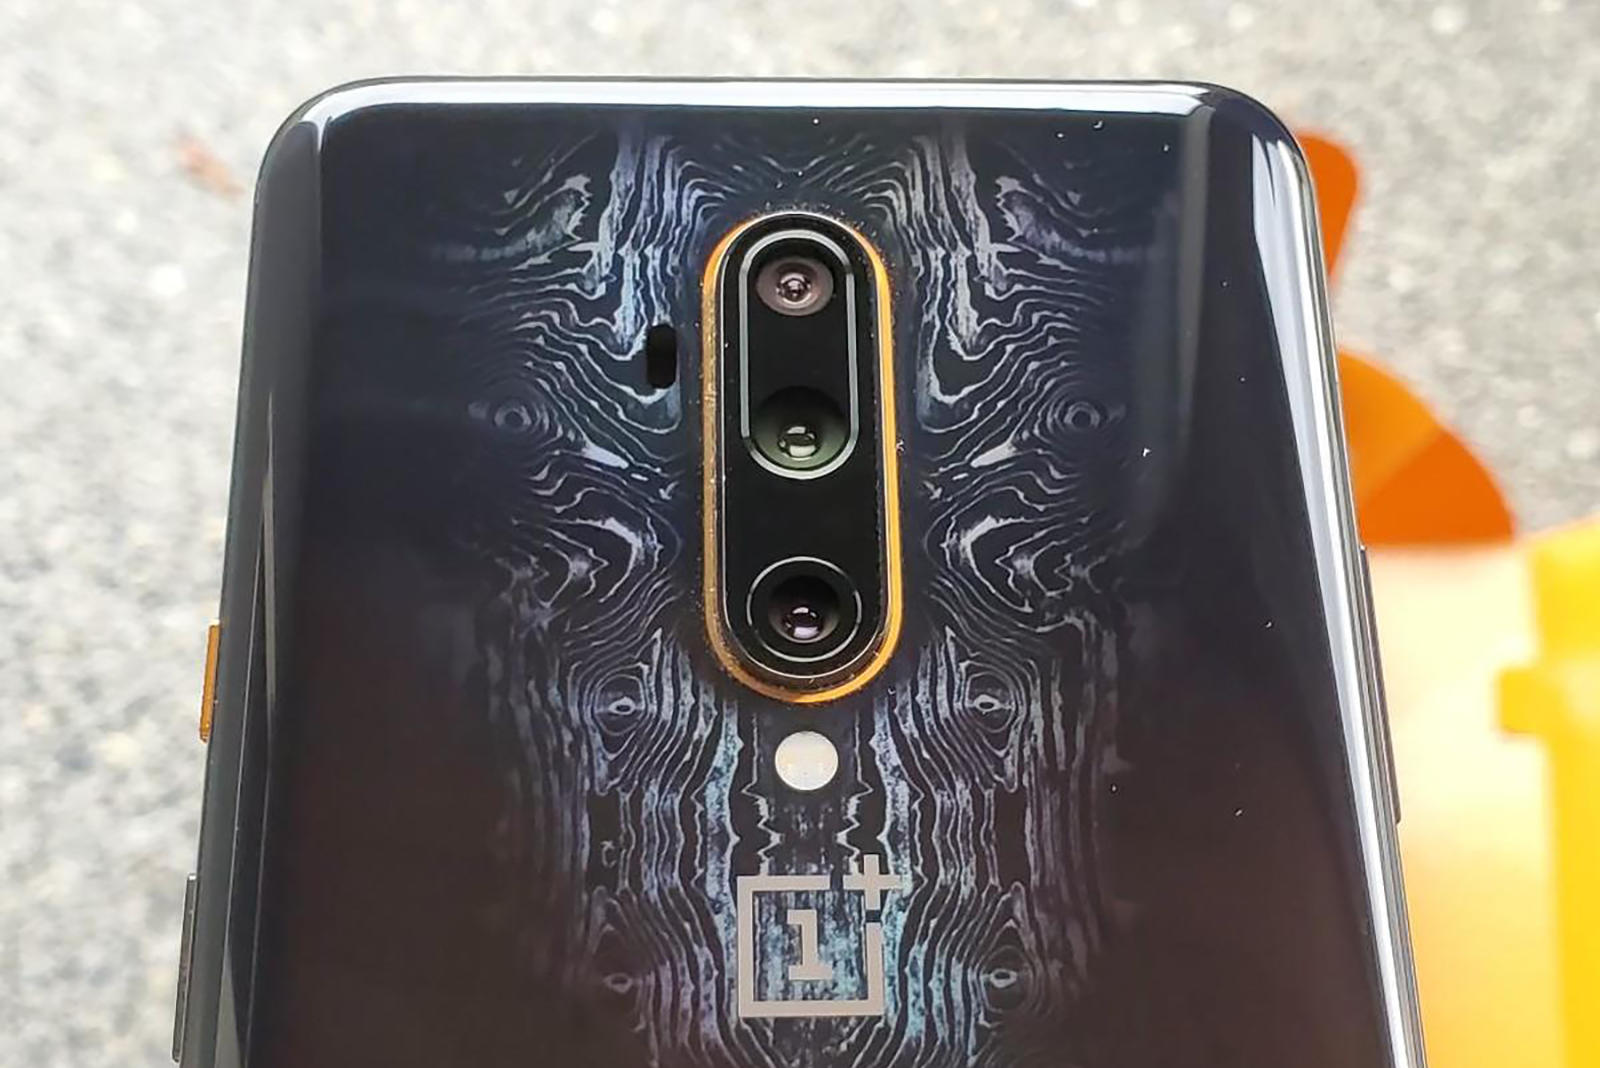 best-old-phone-oneplus-7tp-mclaren-8-review.jpg